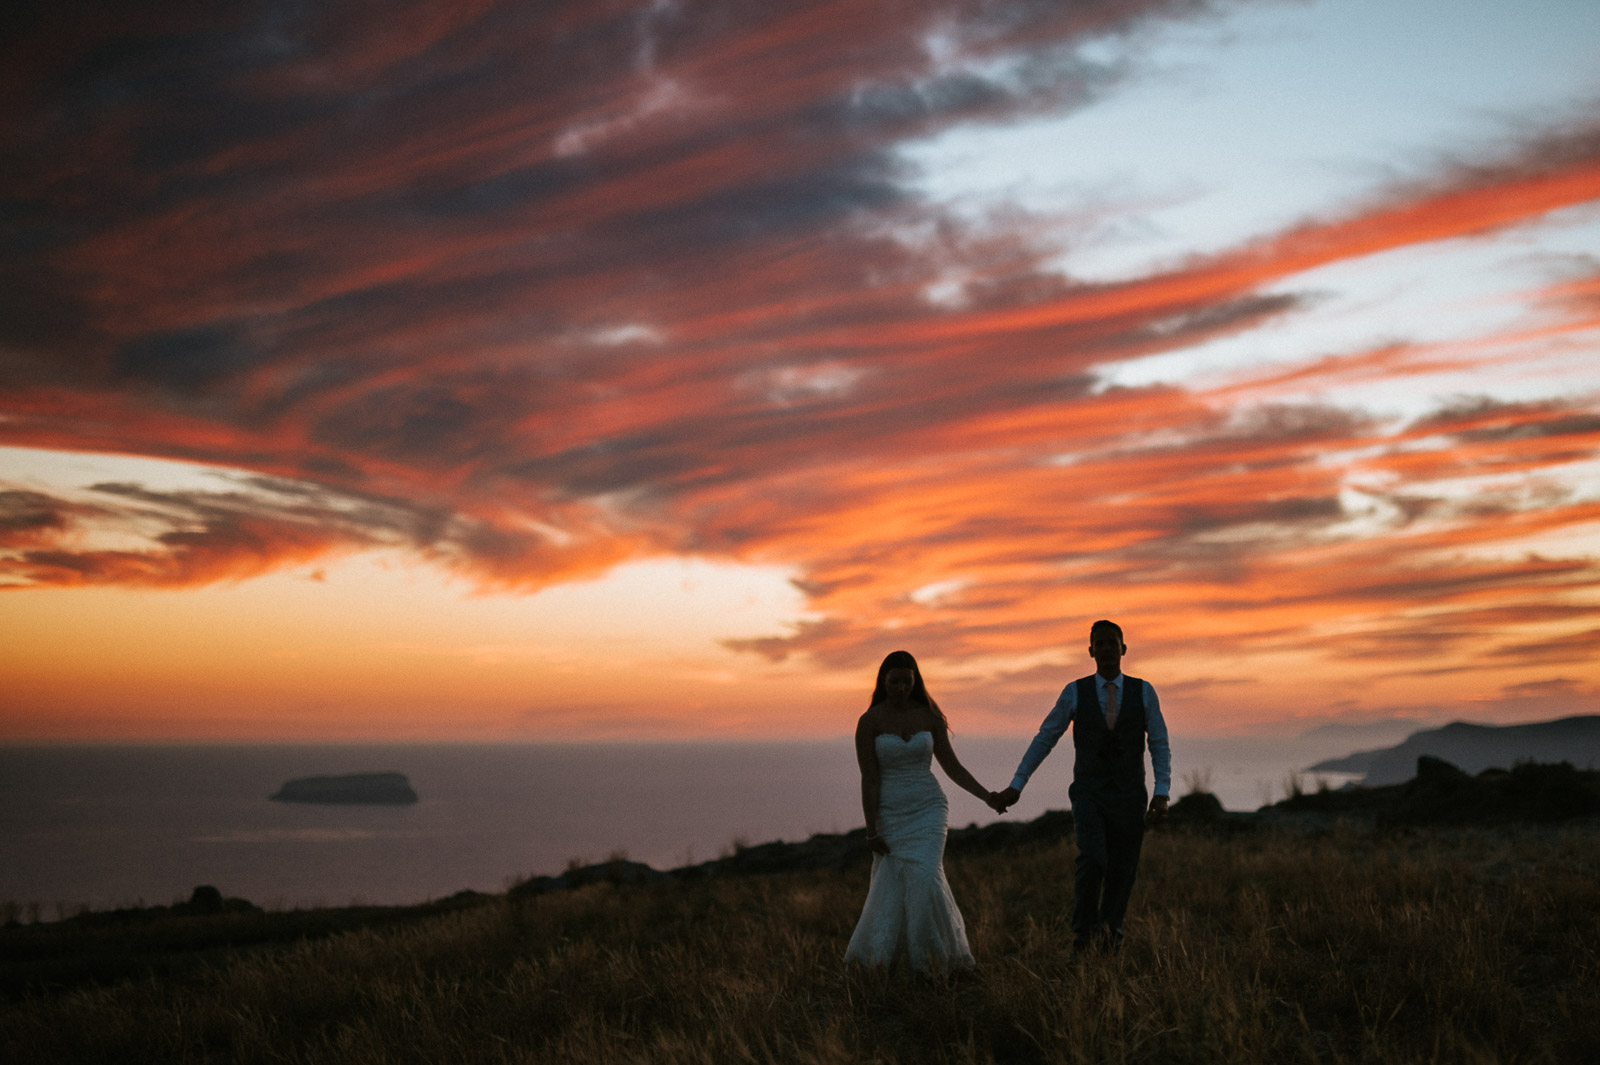 Santorini-Wedding-Photographer-Greece-Destination-Weddings-Mait-Juriado-M&J-Studios-002